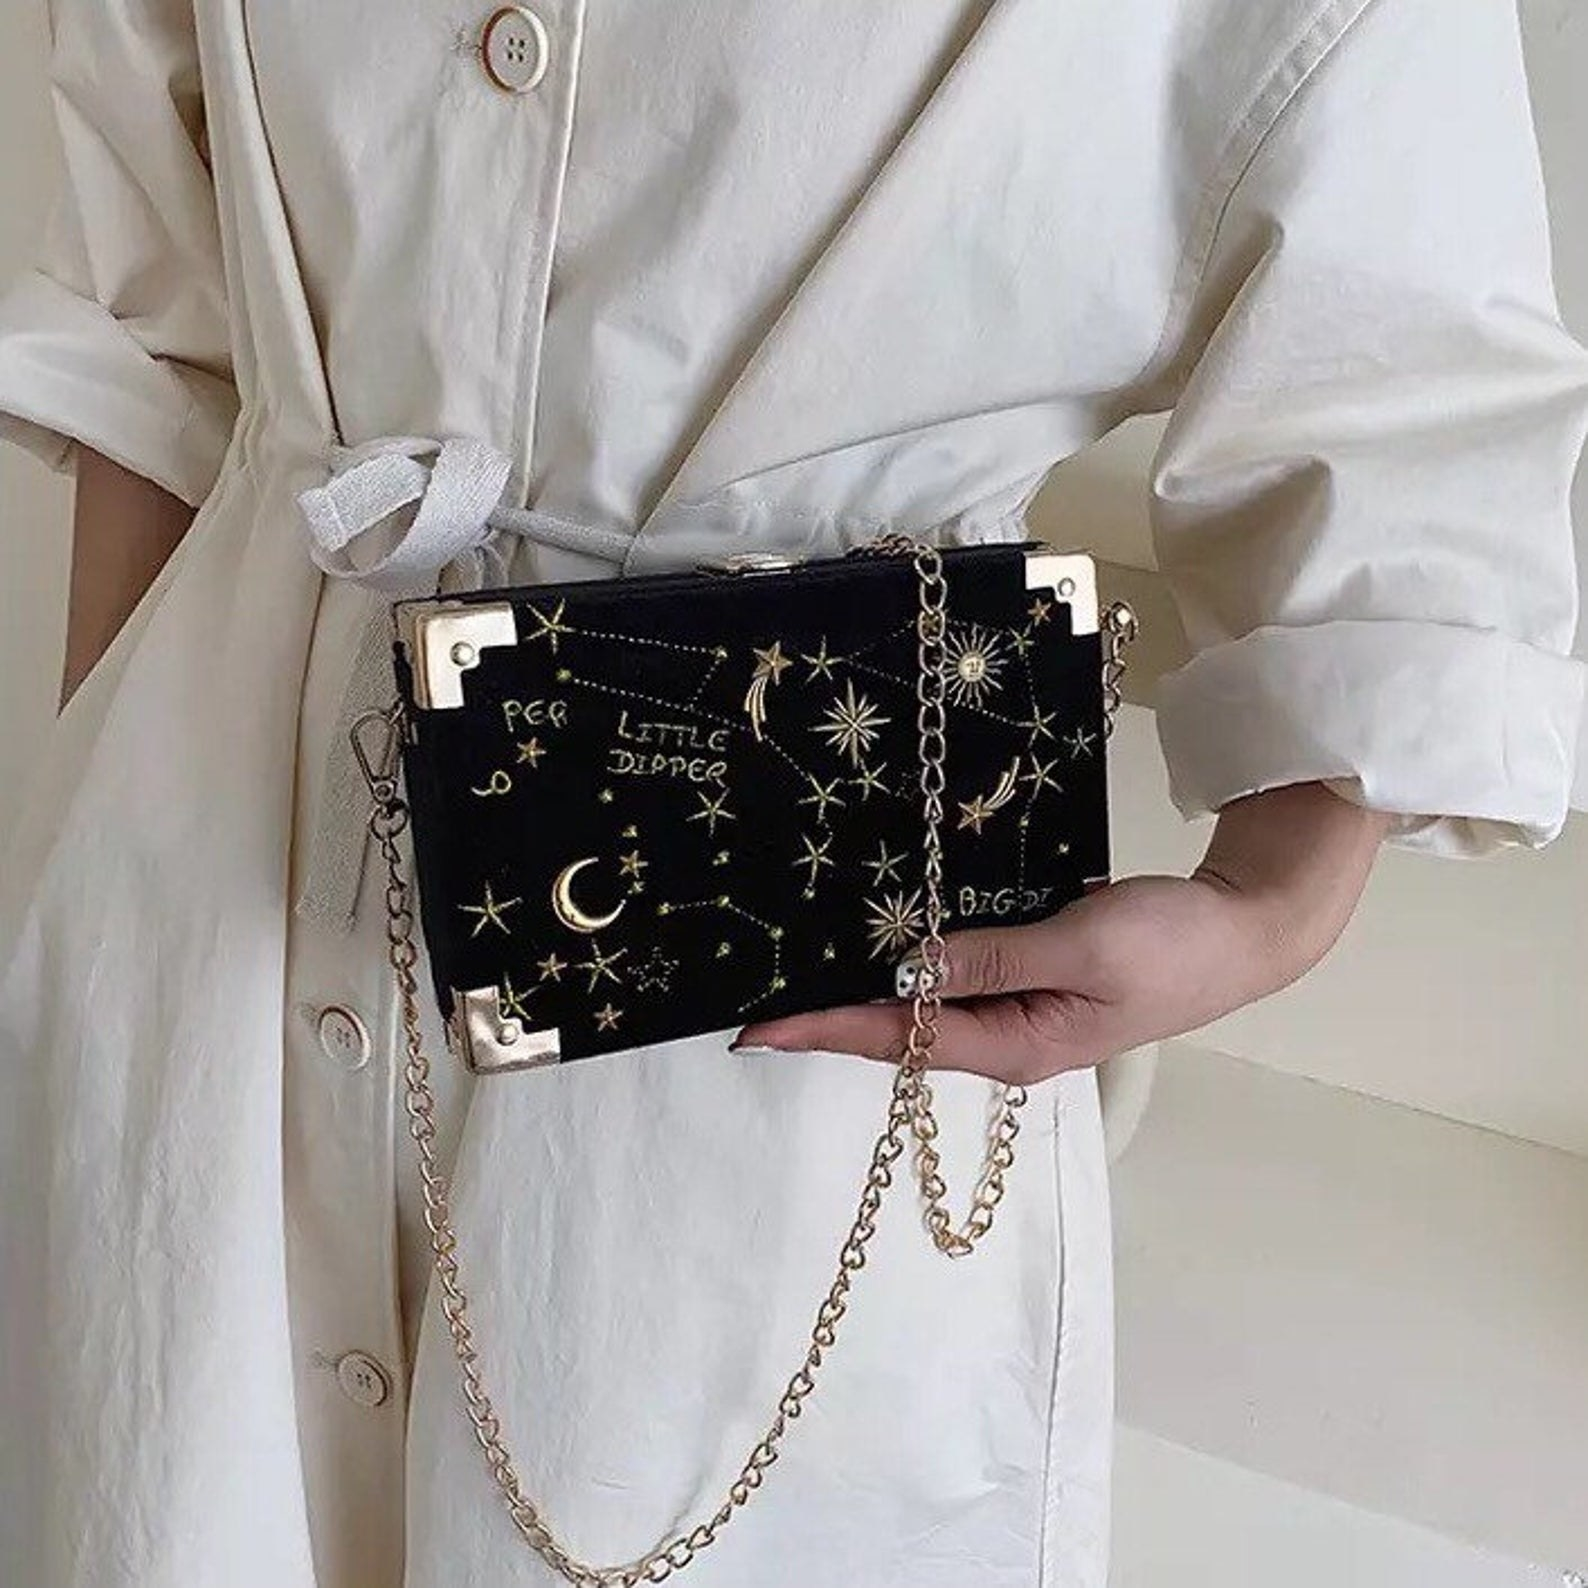 model holding the black purse with gold chain